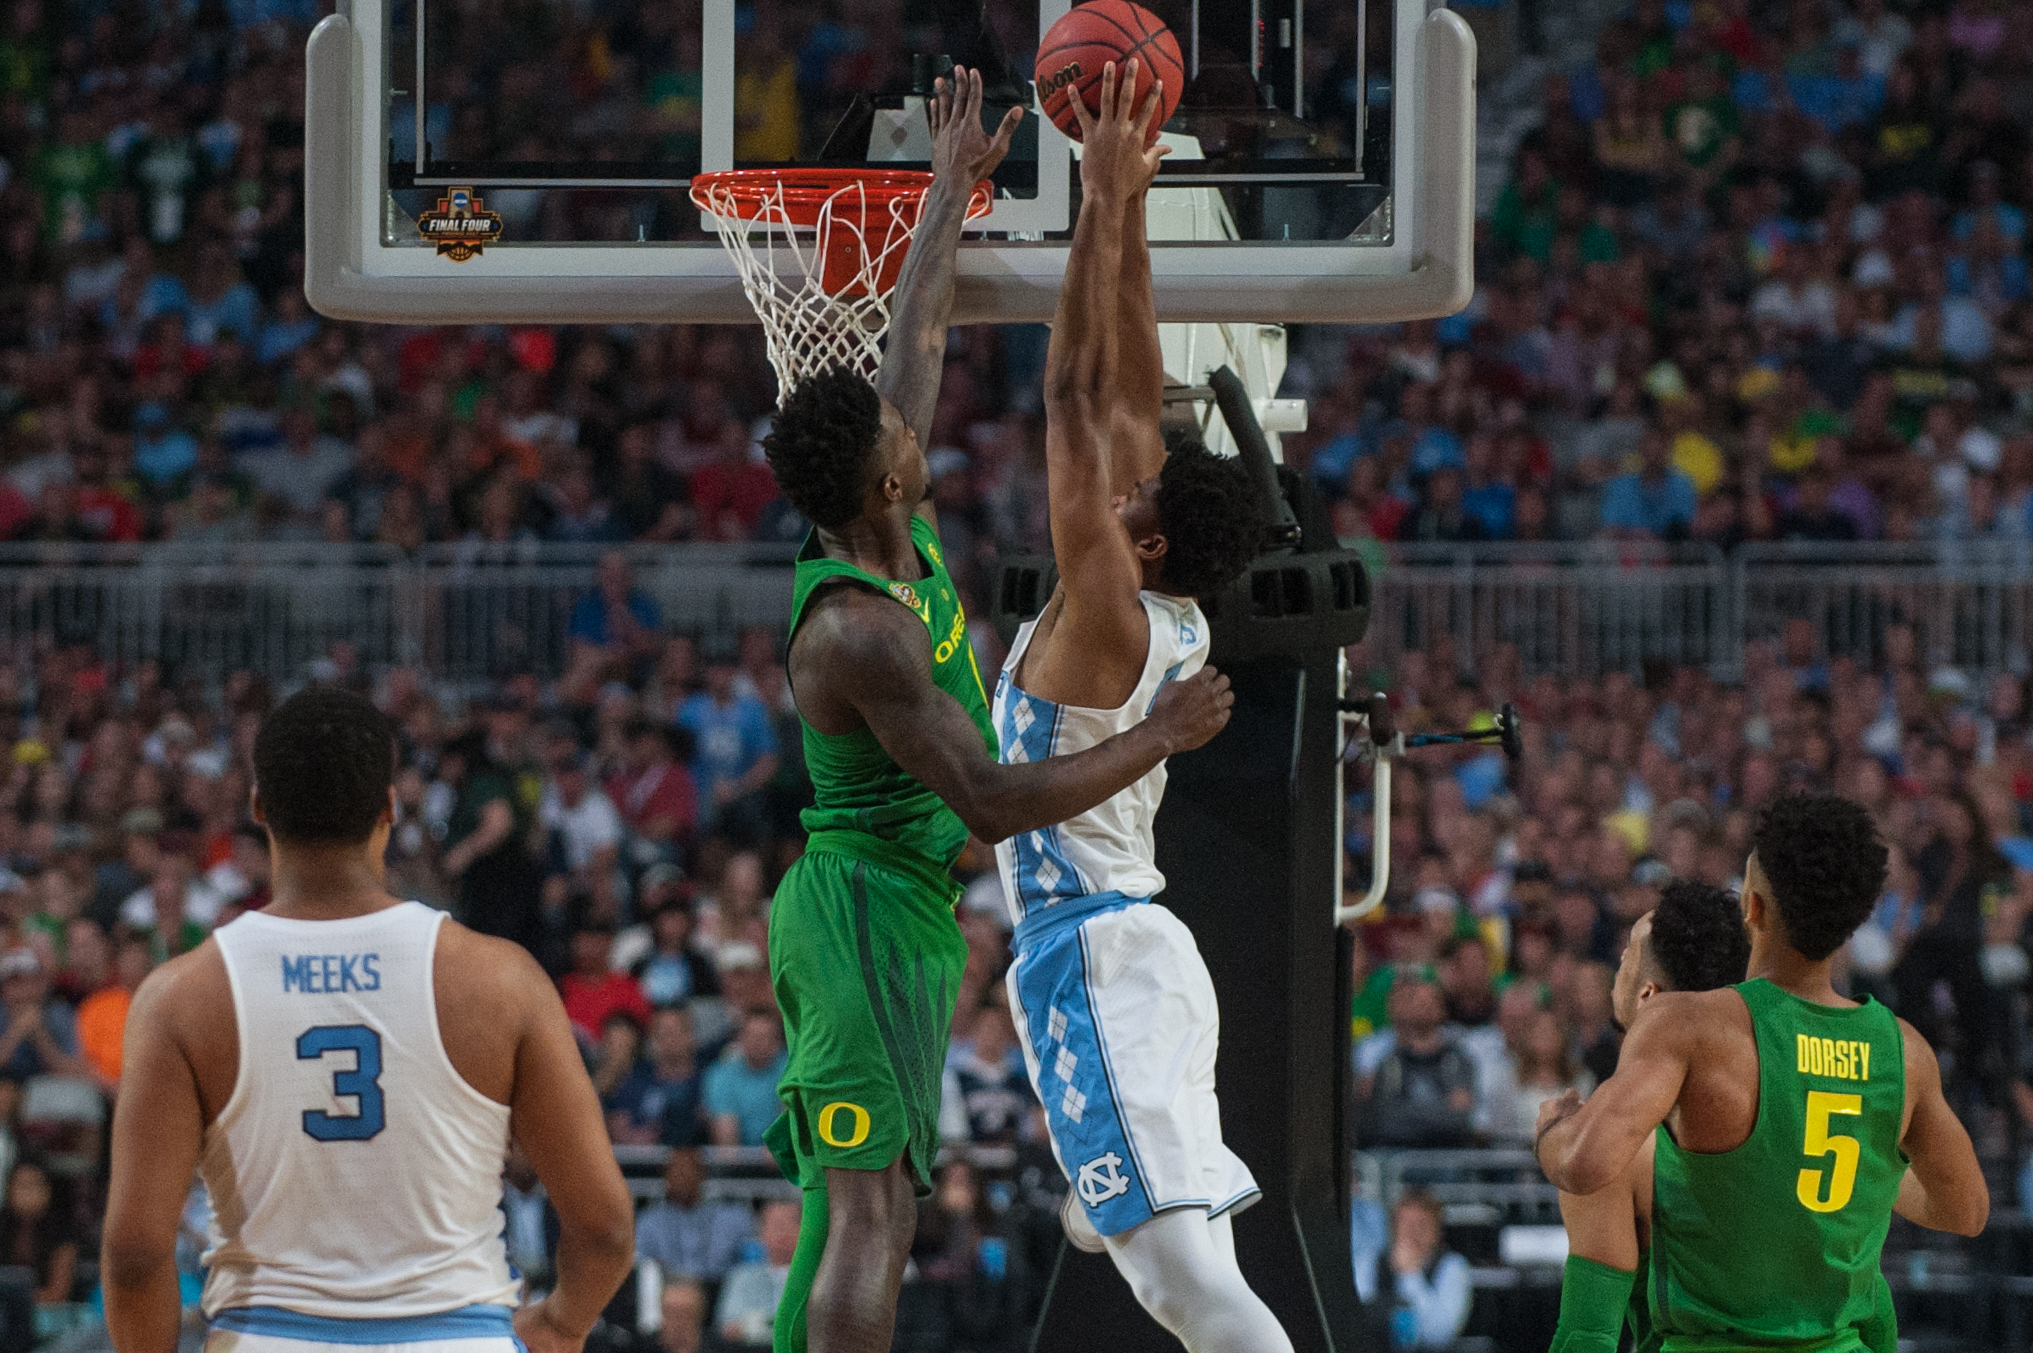 17.03.31.emg.an.final.four.oregon.vs.north.carolina-5.jpg